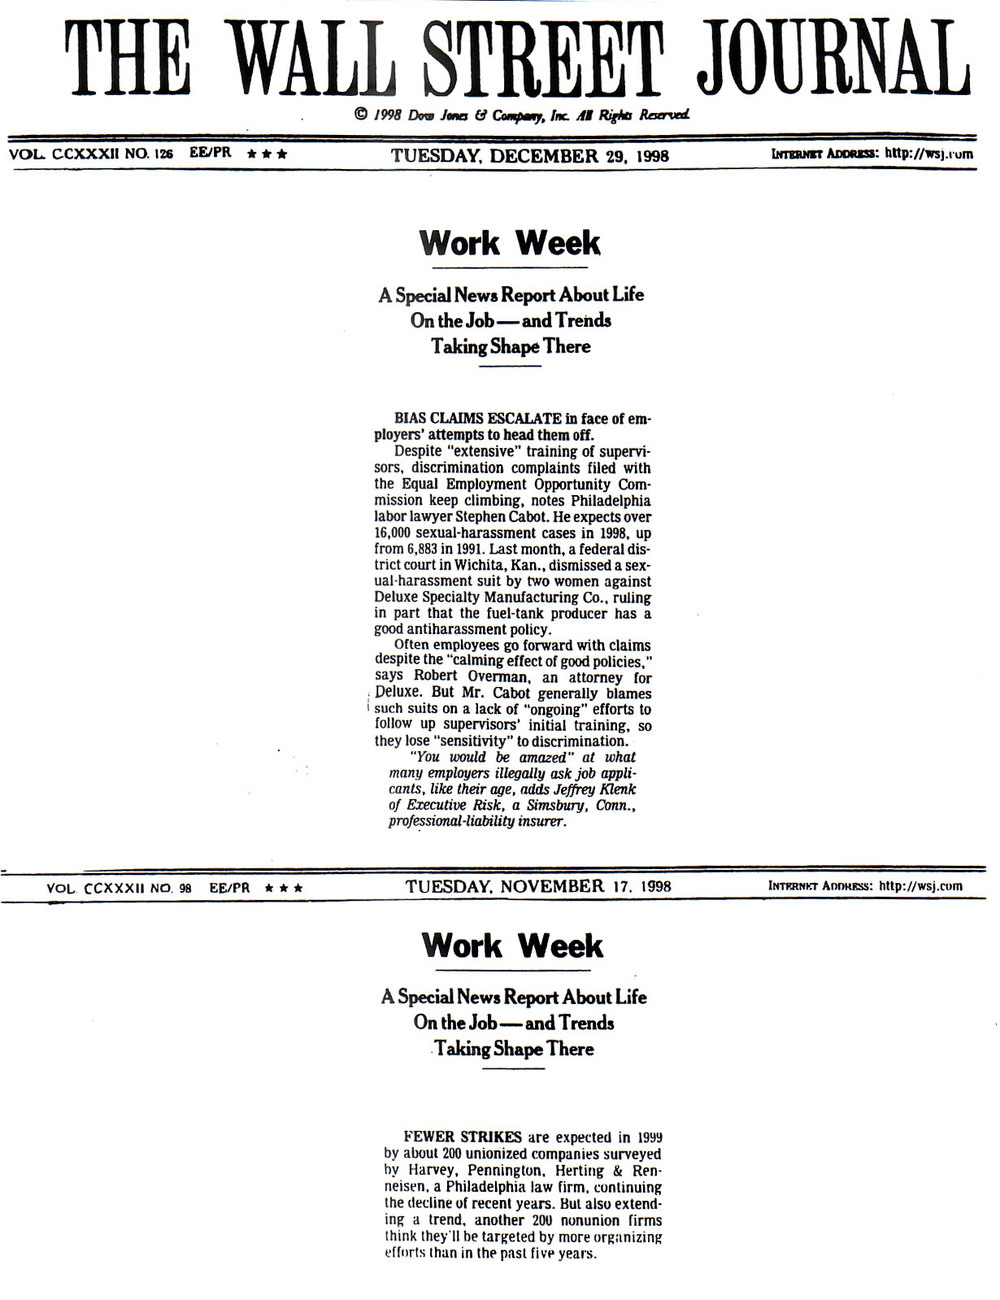 the wall street journal-december 29, 1998-work week.jpg